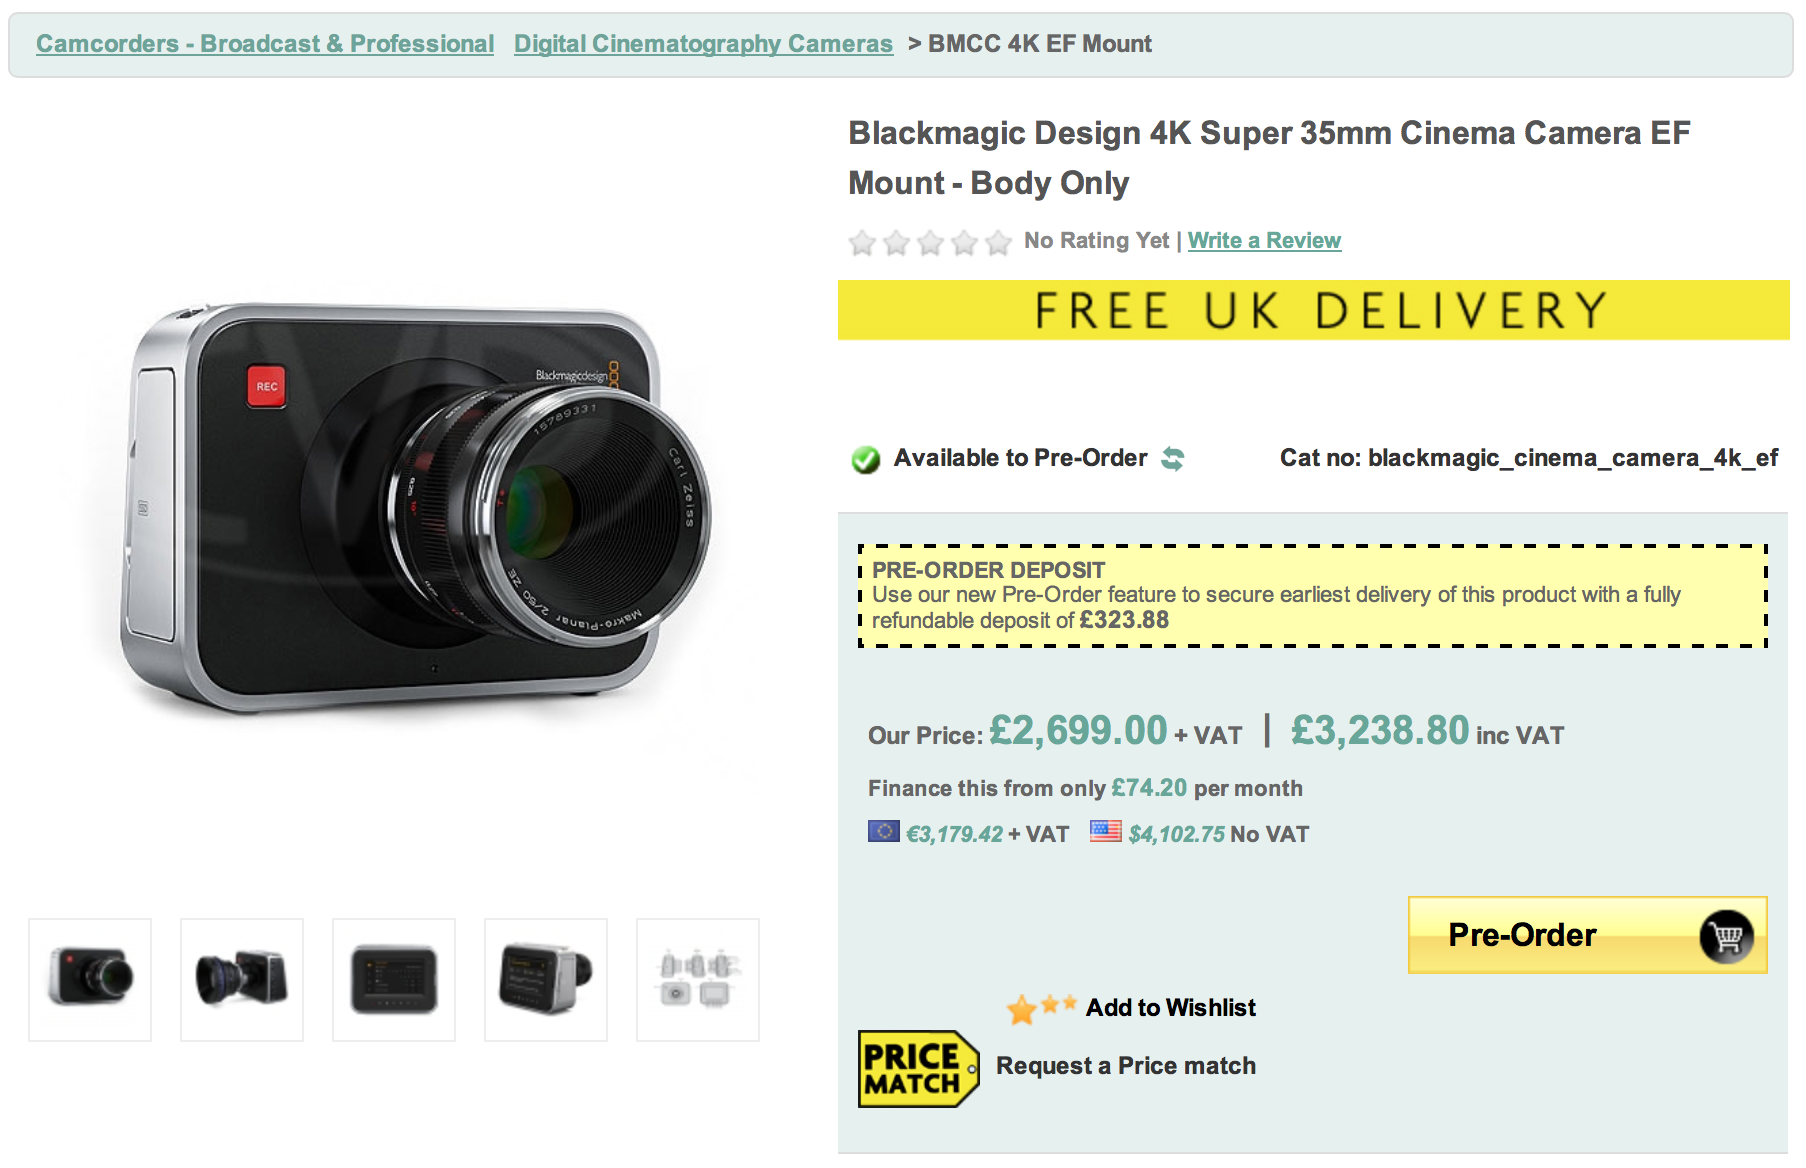 Blackmagic Design 4k Super 35mm Cinema Camera Ready To Pre Order Newsshooter